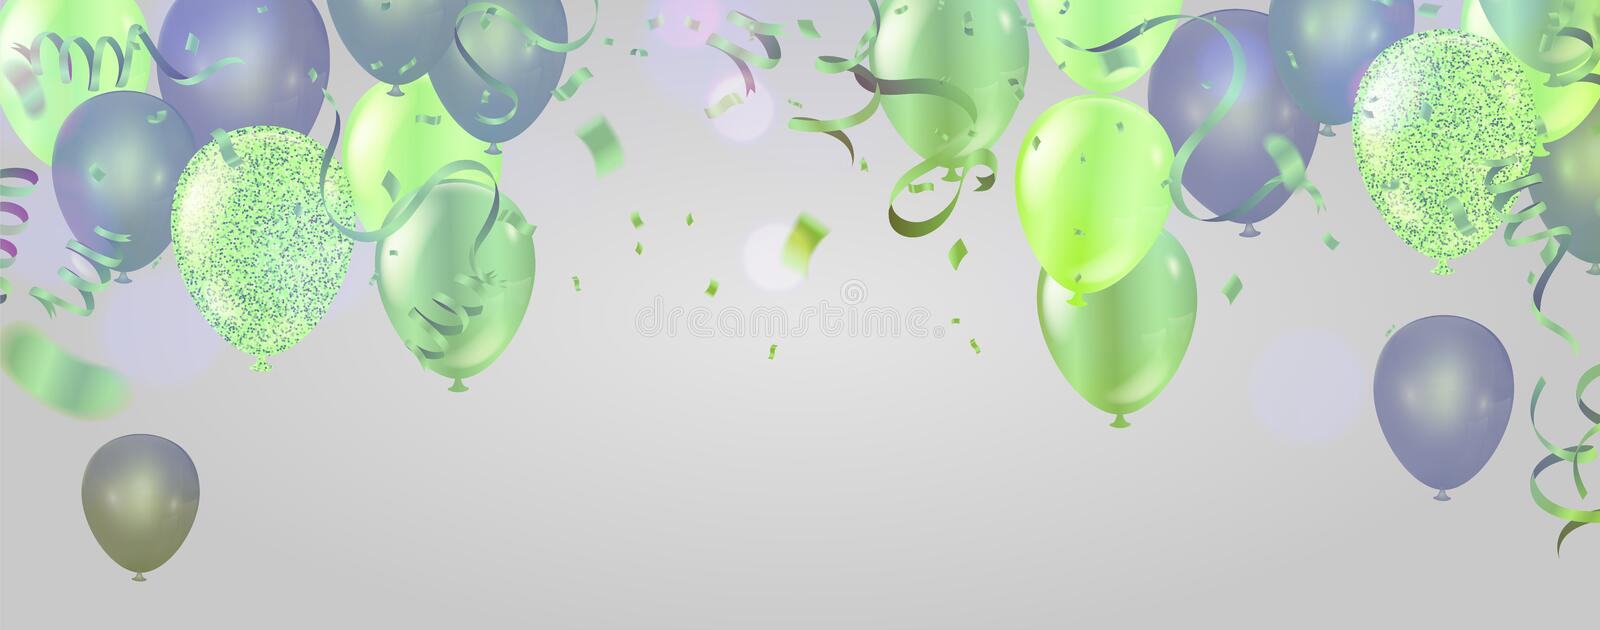 Celebration banner with green balloons background and Saint Patrick`s Day party vector illustration